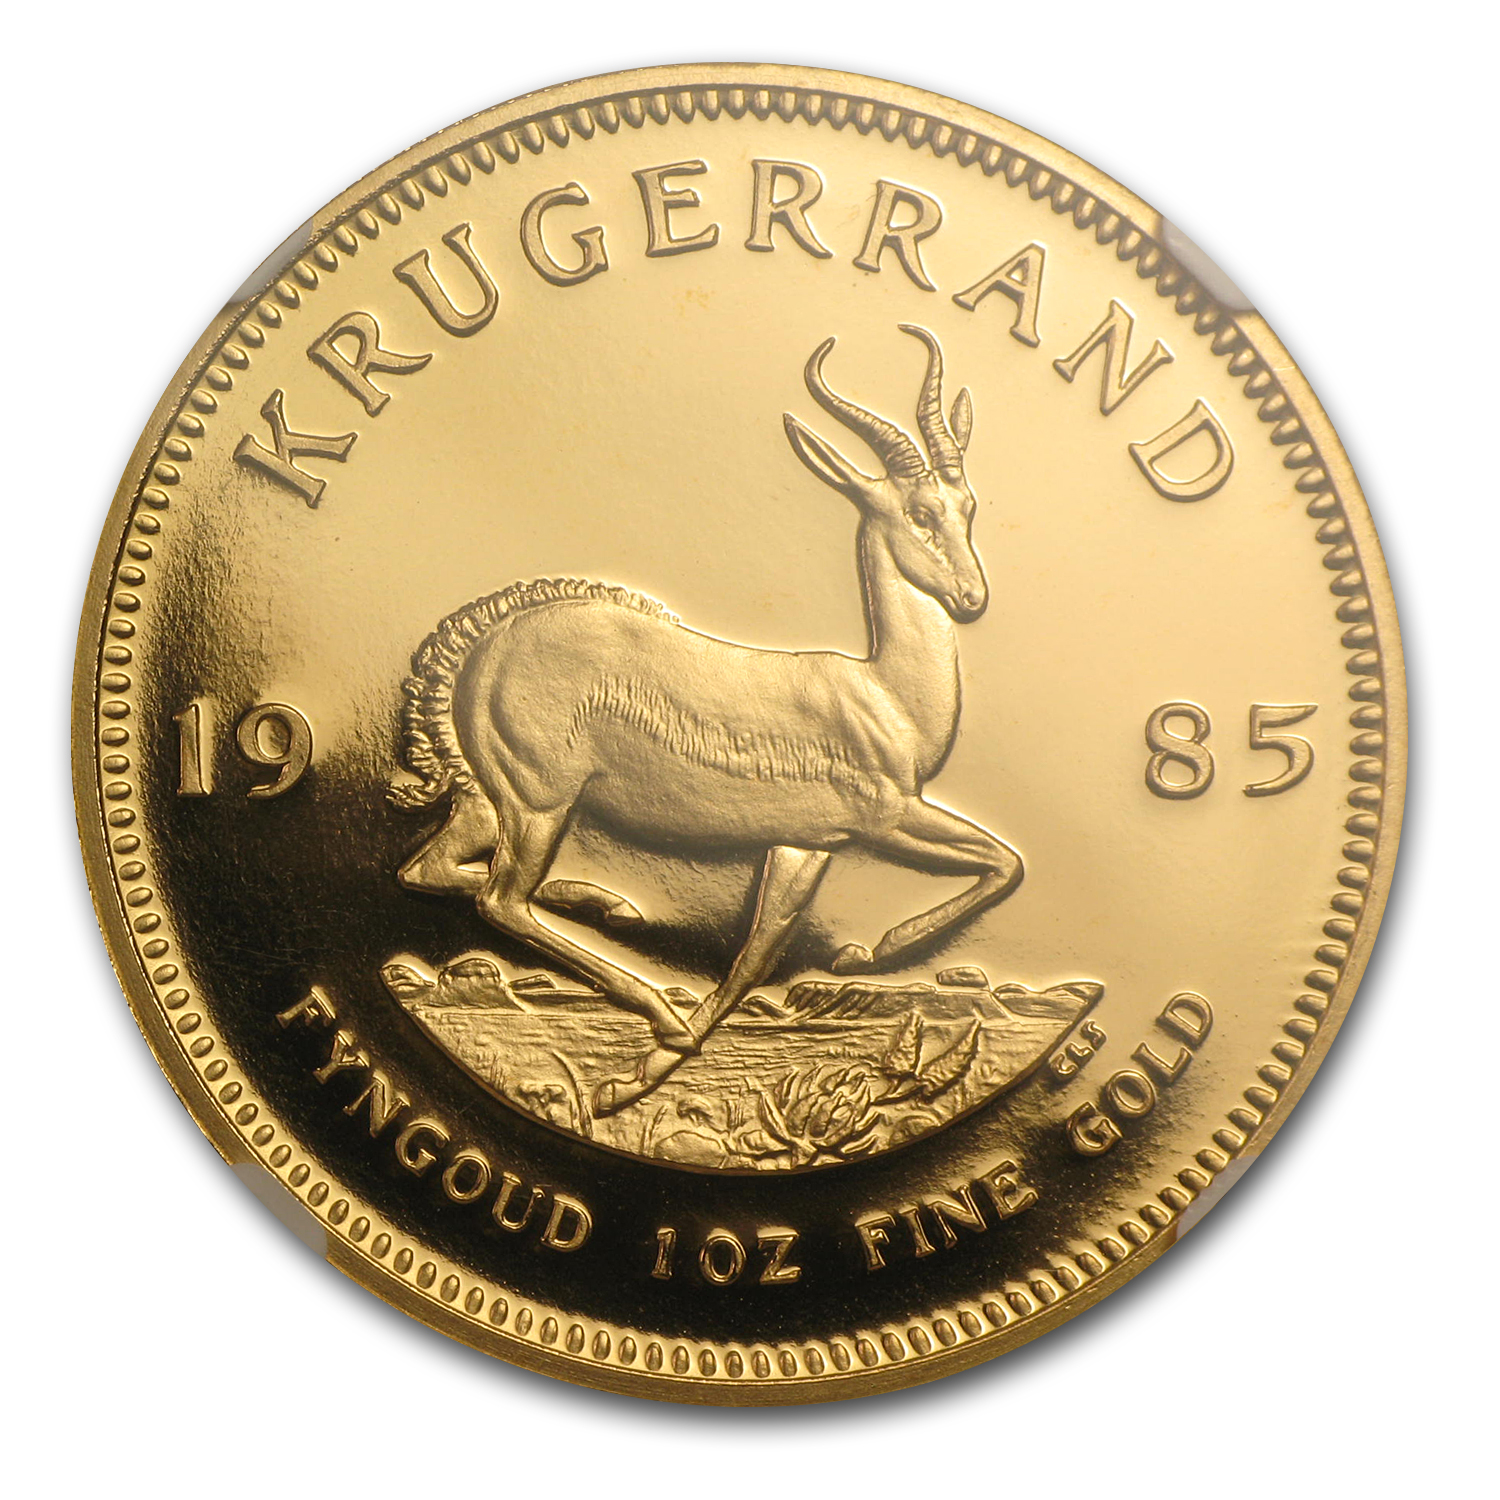 1985 South Africa 1 oz Gold Krugerrand PF-70 NGC